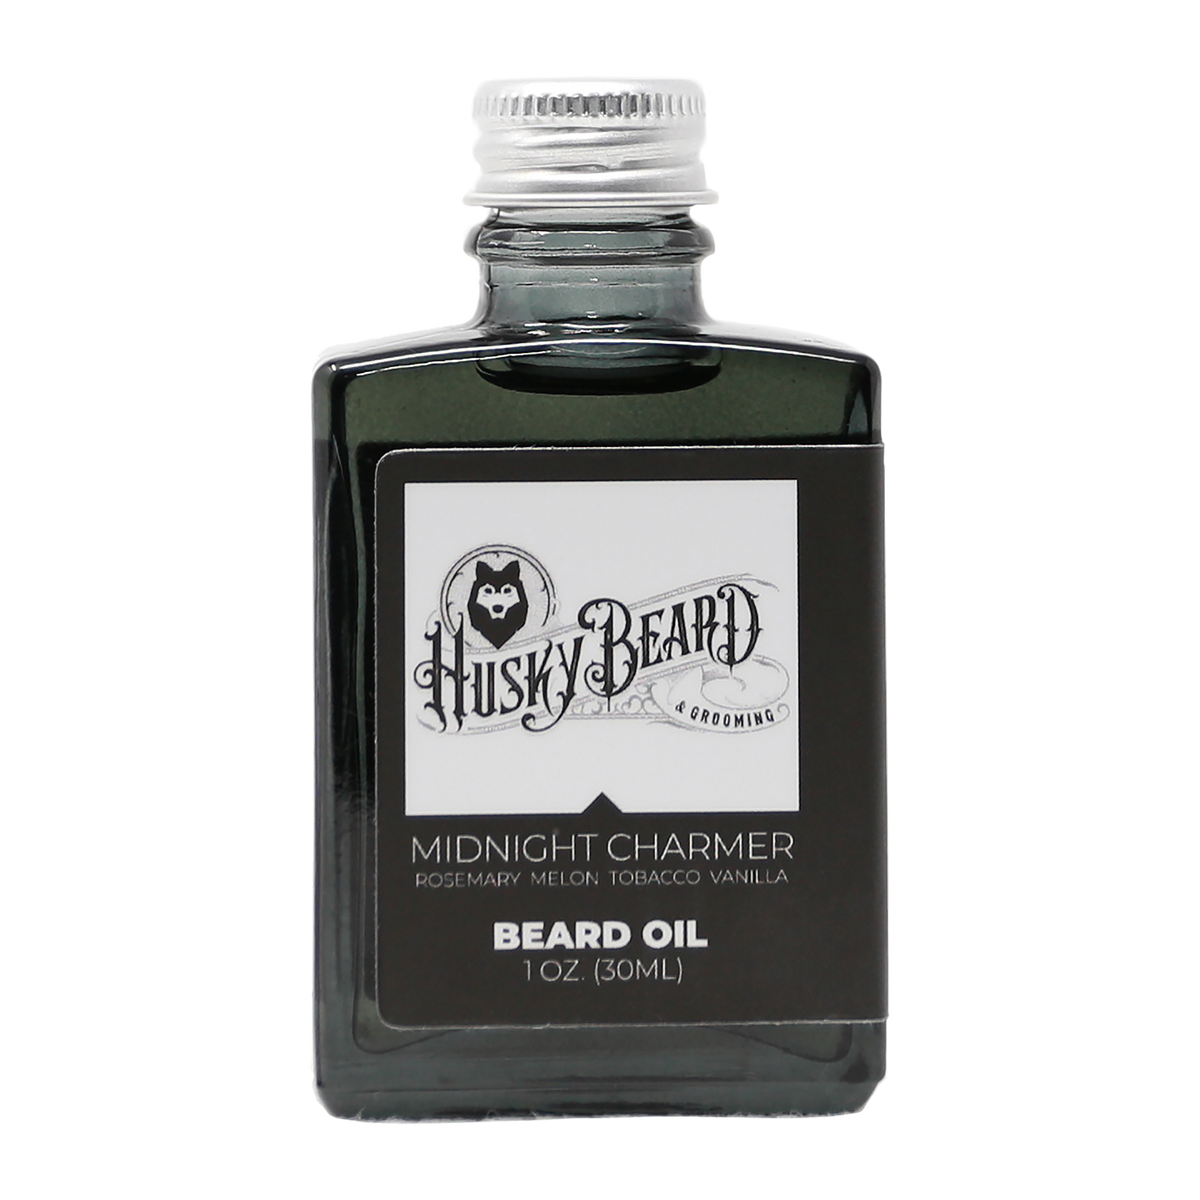 Midnight Charmer Beard Oil or Beard Cream - Smooth and Seductive Scent